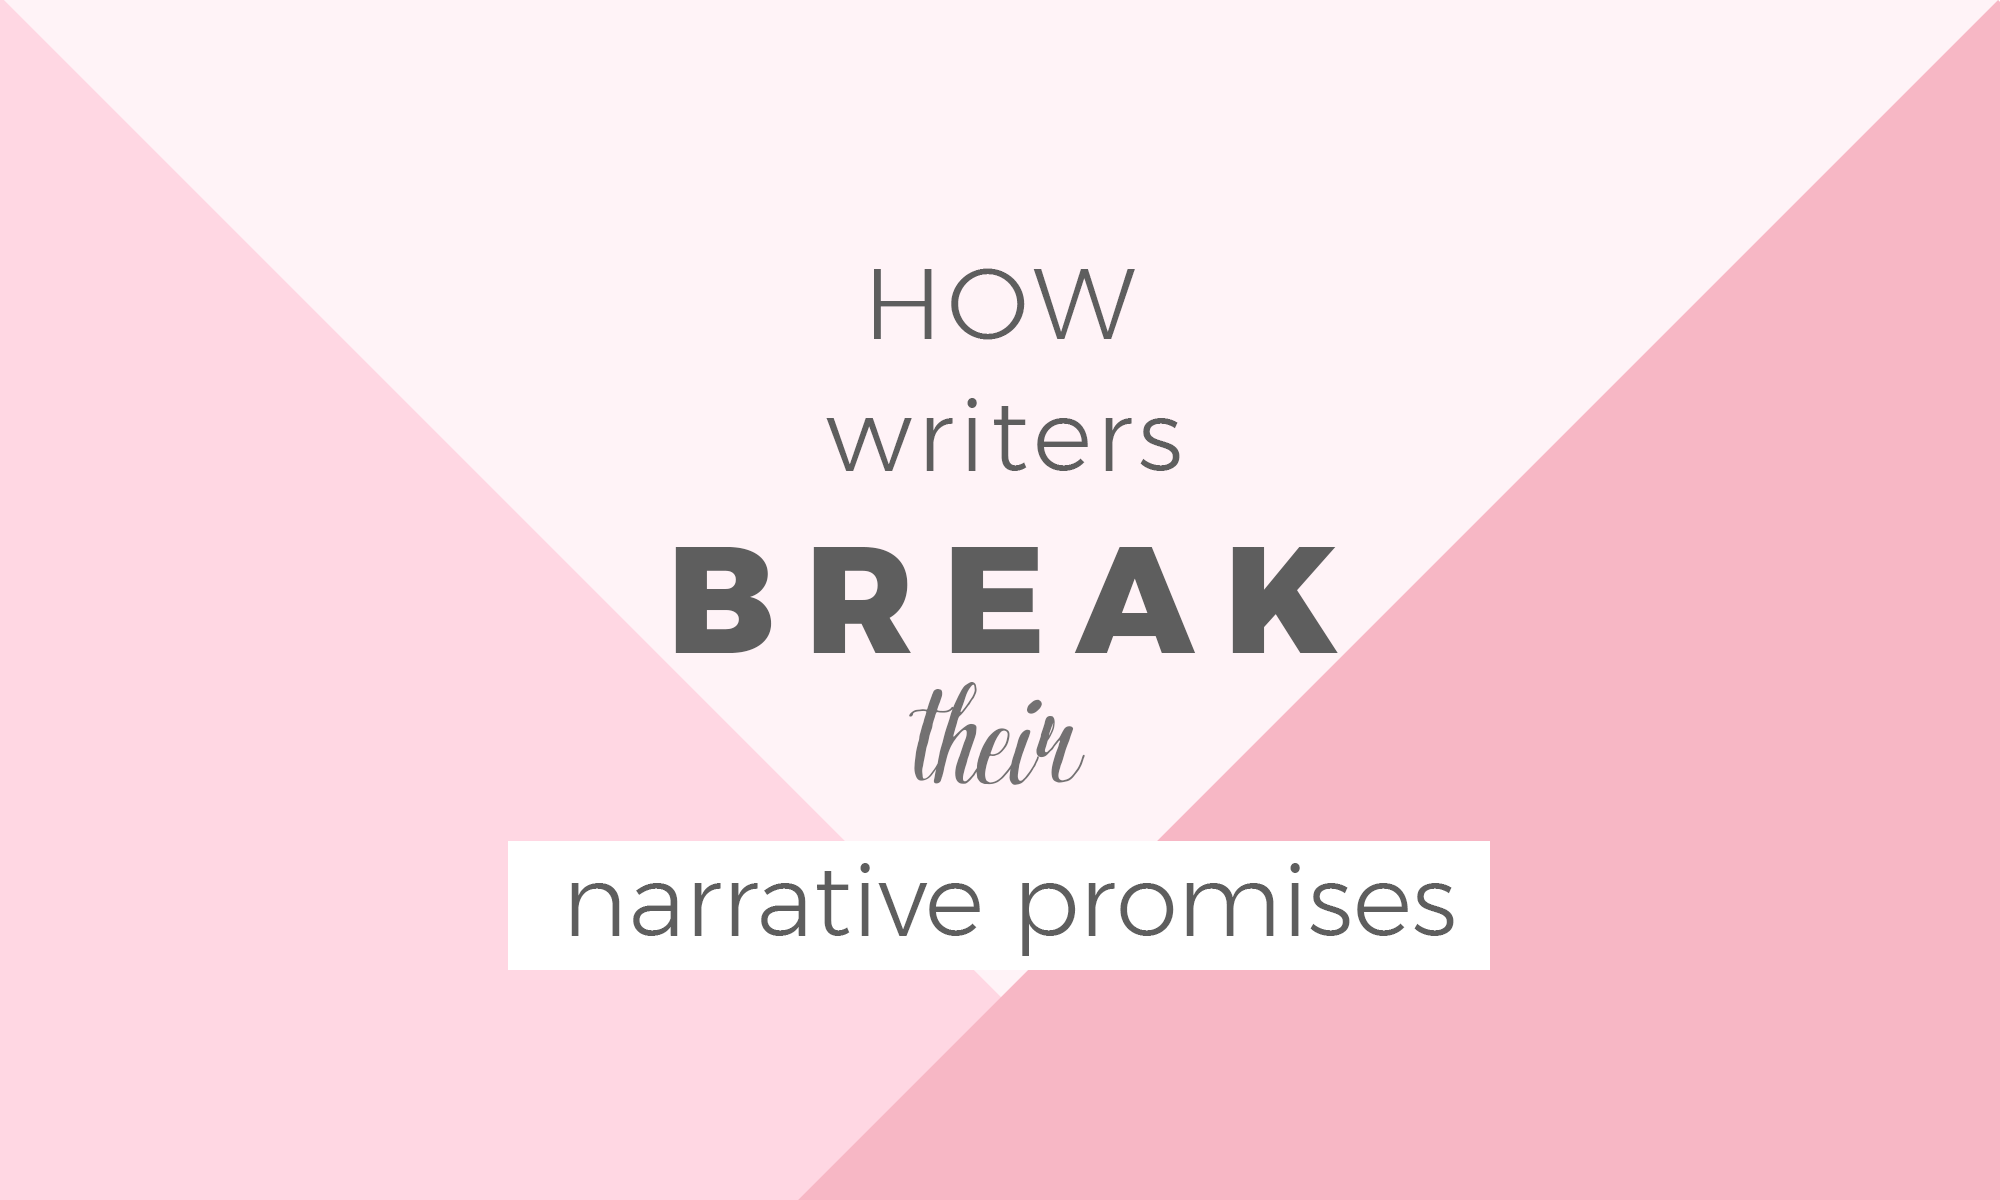 How Writers Break Their Narrative Promises